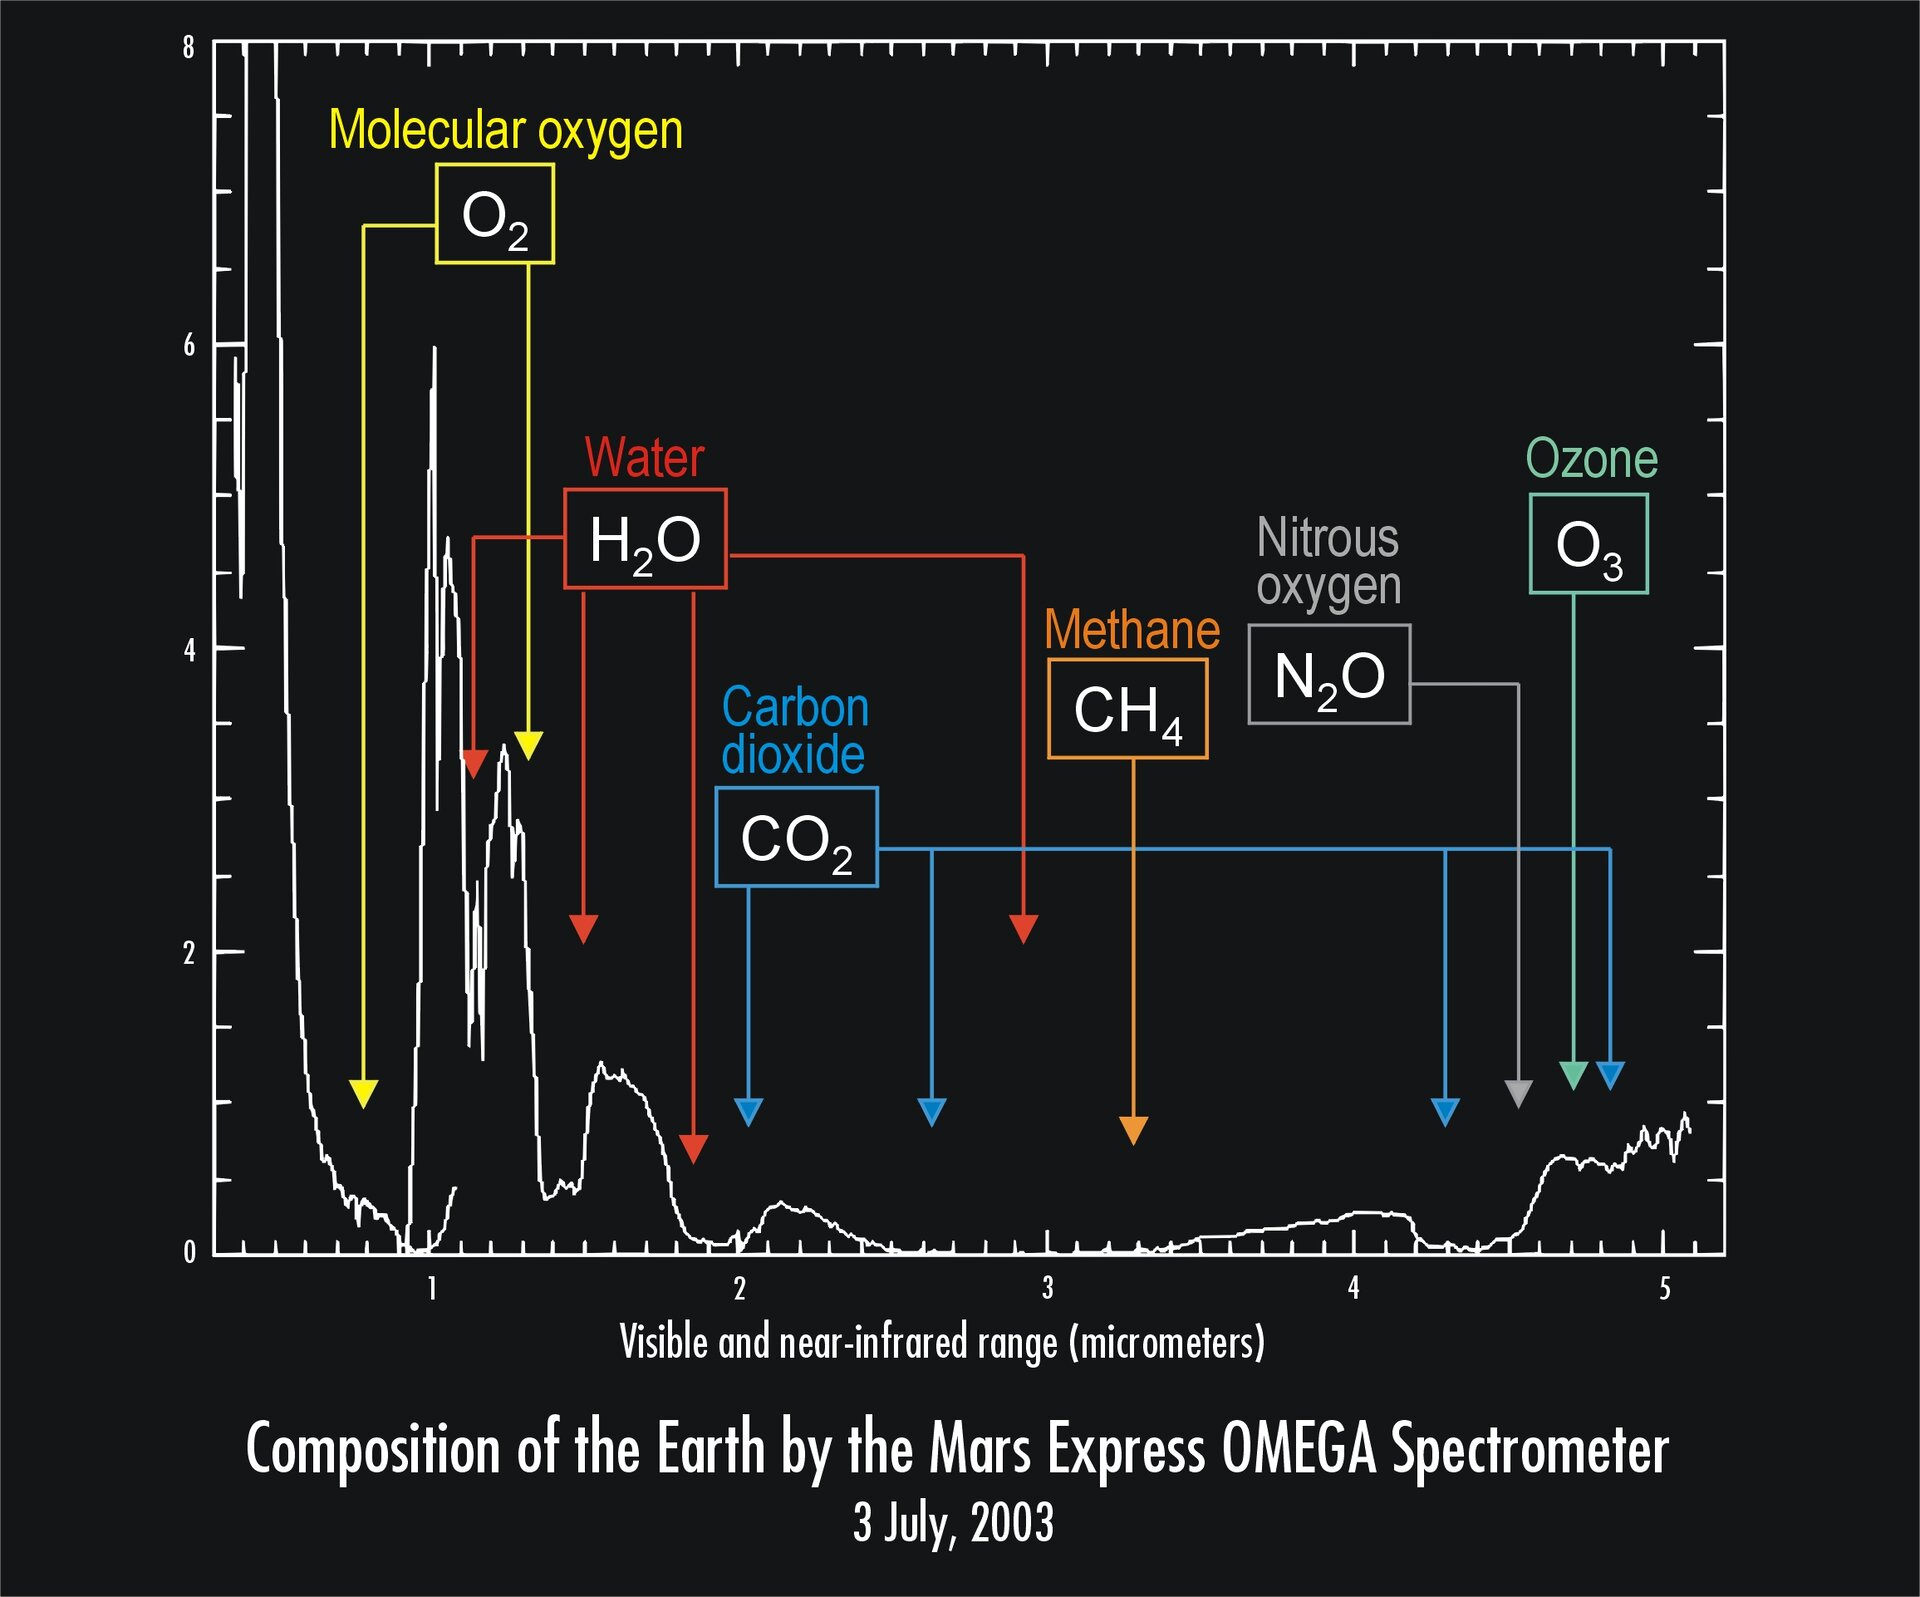 Mars Express records the composition of the Earth's atmosphere and oceans